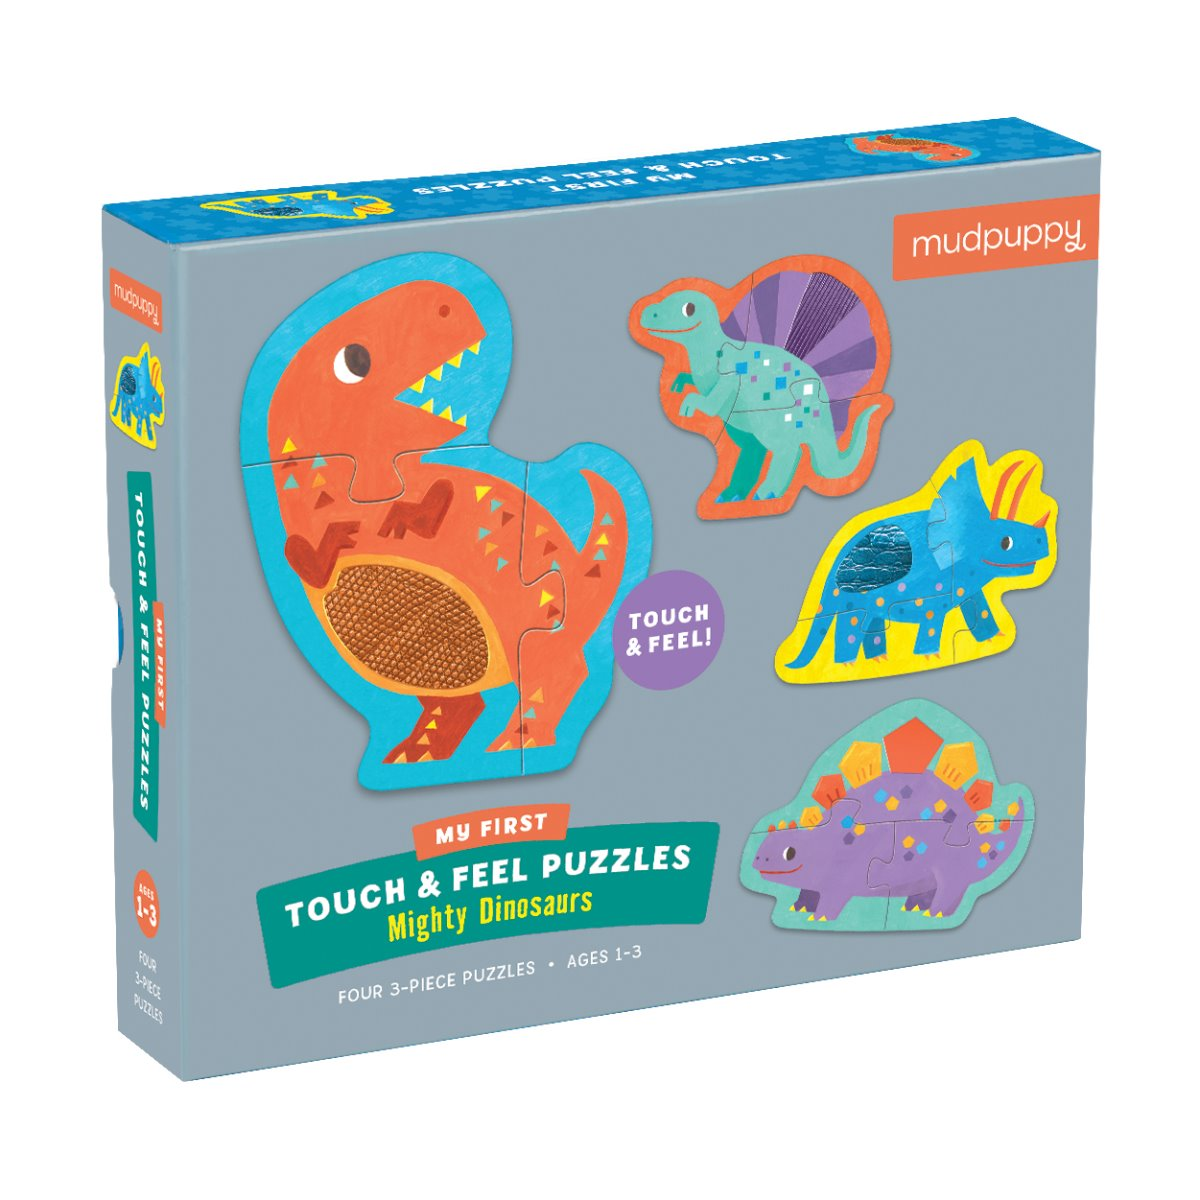 Mudpuppy My First Touch and Feel Puzzle - Mighty Dinosaurs